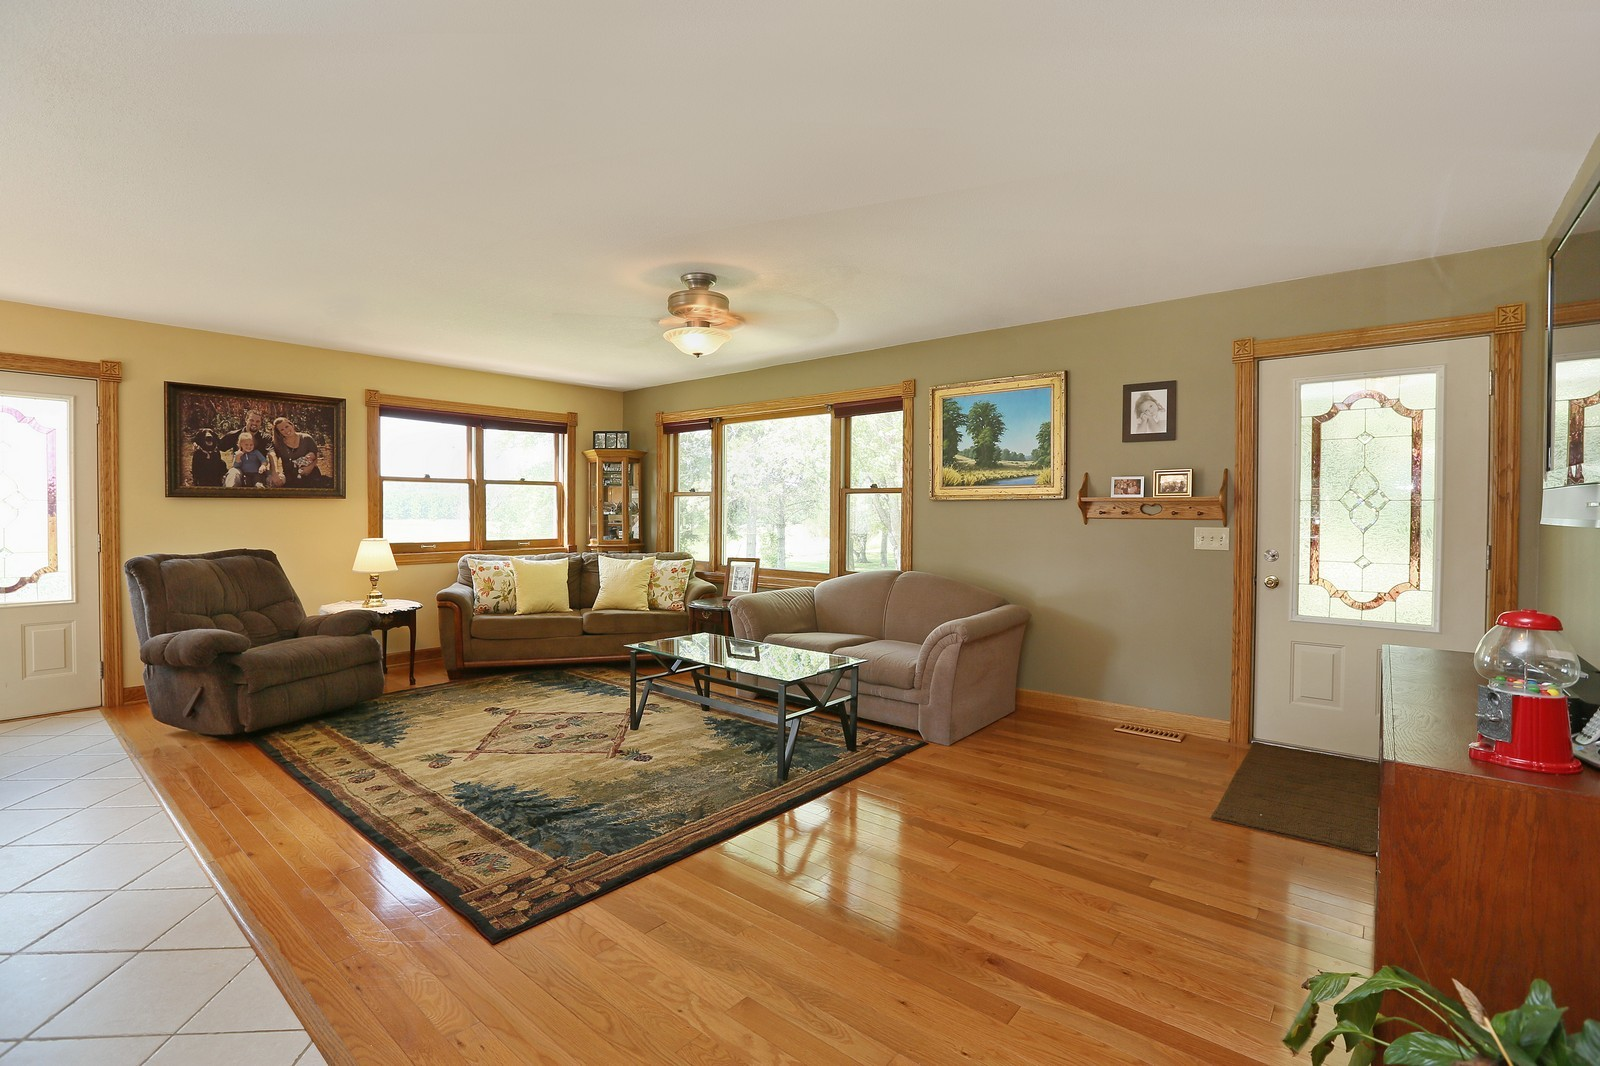 Real Estate Photography - 25917 Xylite St NE, Isanti, MN, 55040 - Living Room